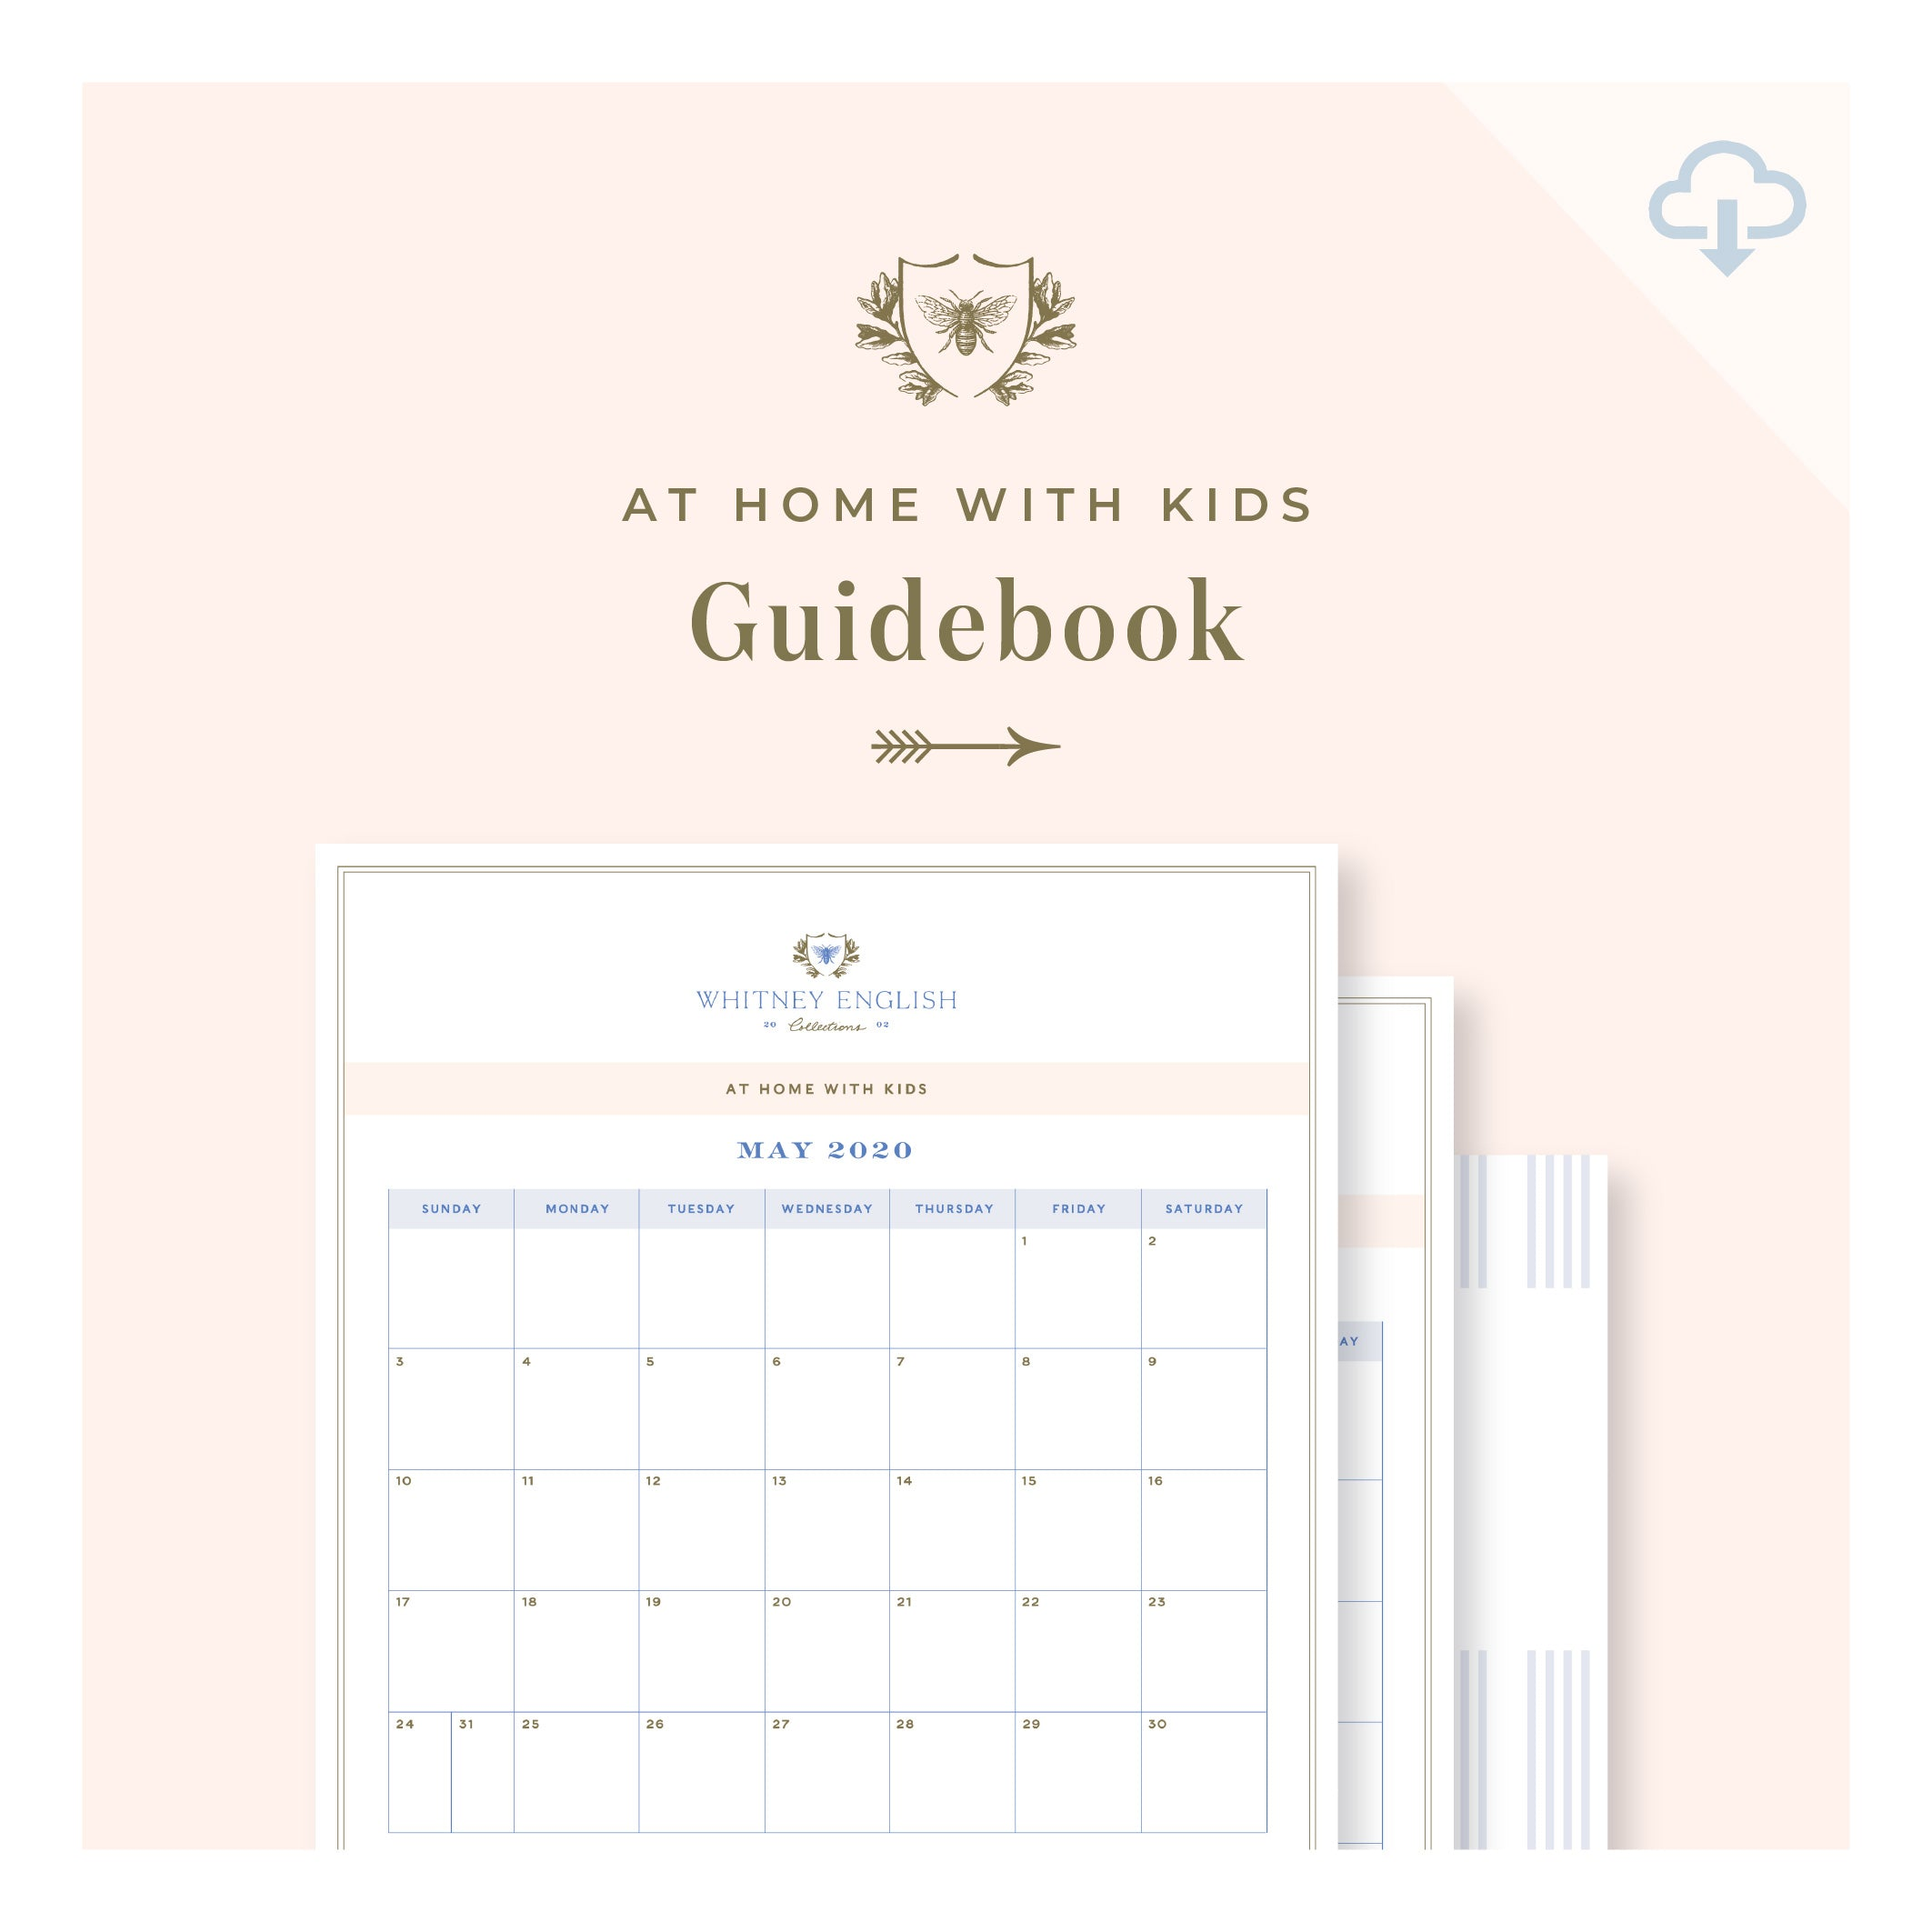 Printable || At Home with Kids Guidebook